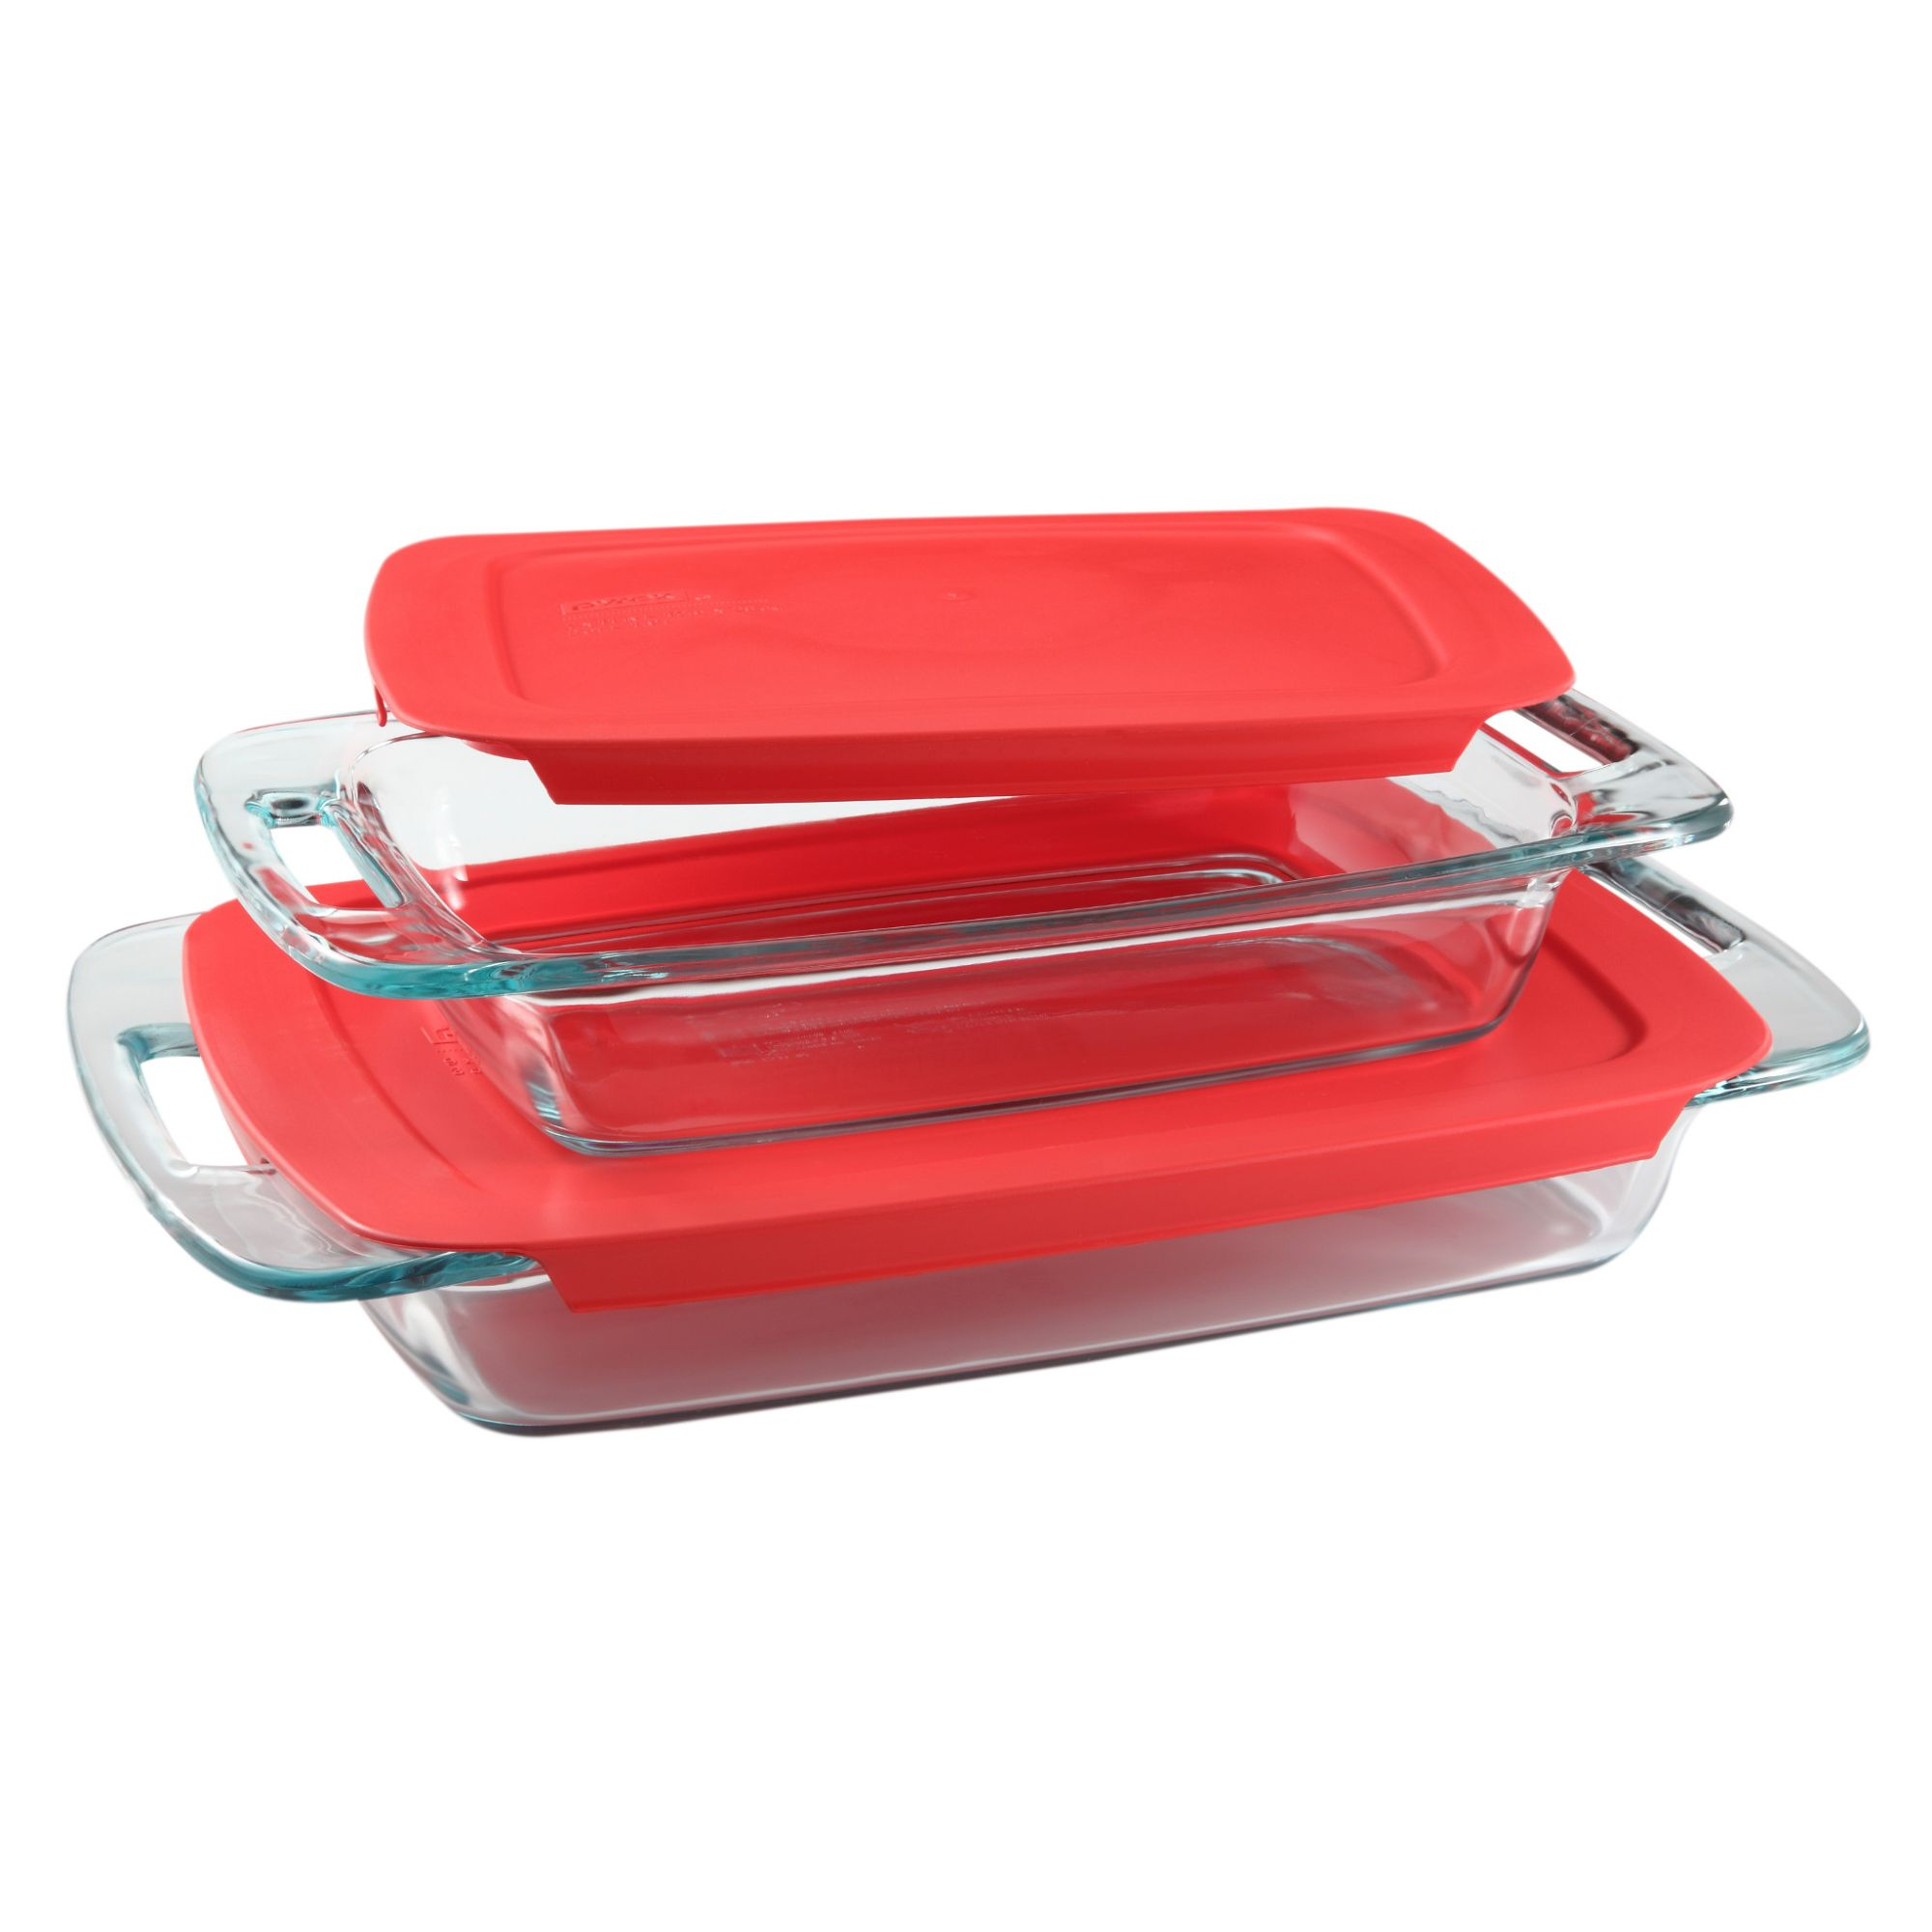 World Kitchen, Inc Pyrex Easy Grab with Lids Value - Plus Pack Glass Bakeware  -  4 PC, 4.0 PIECE(S)